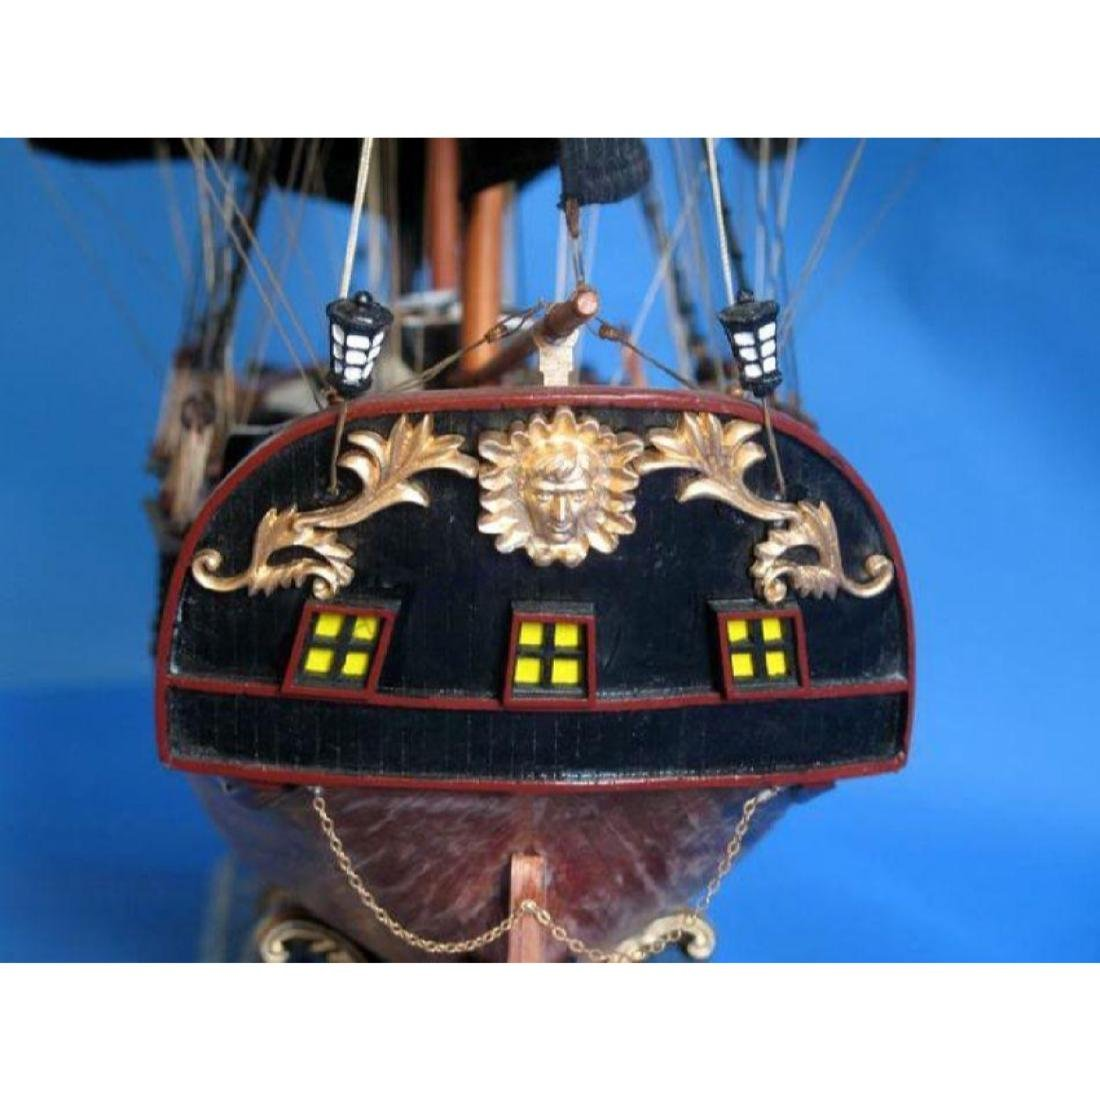 "Wooden Caribbean Pirate Ship Model Limited 36"" - Black - 3"